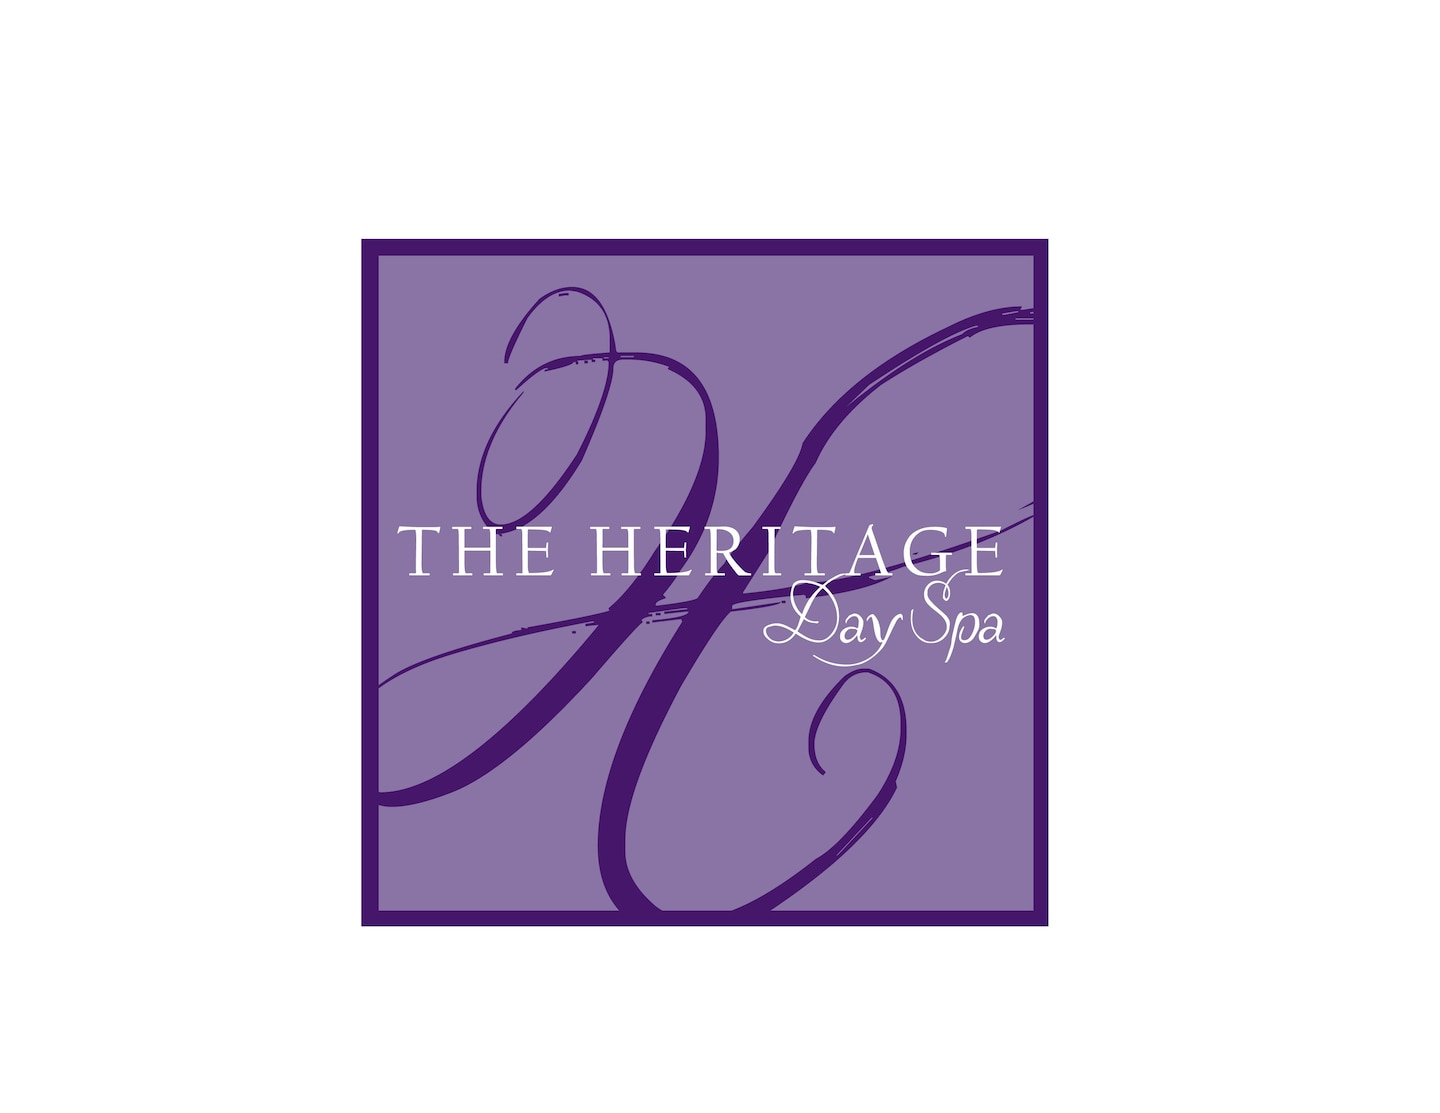 The Heritage Day Spa